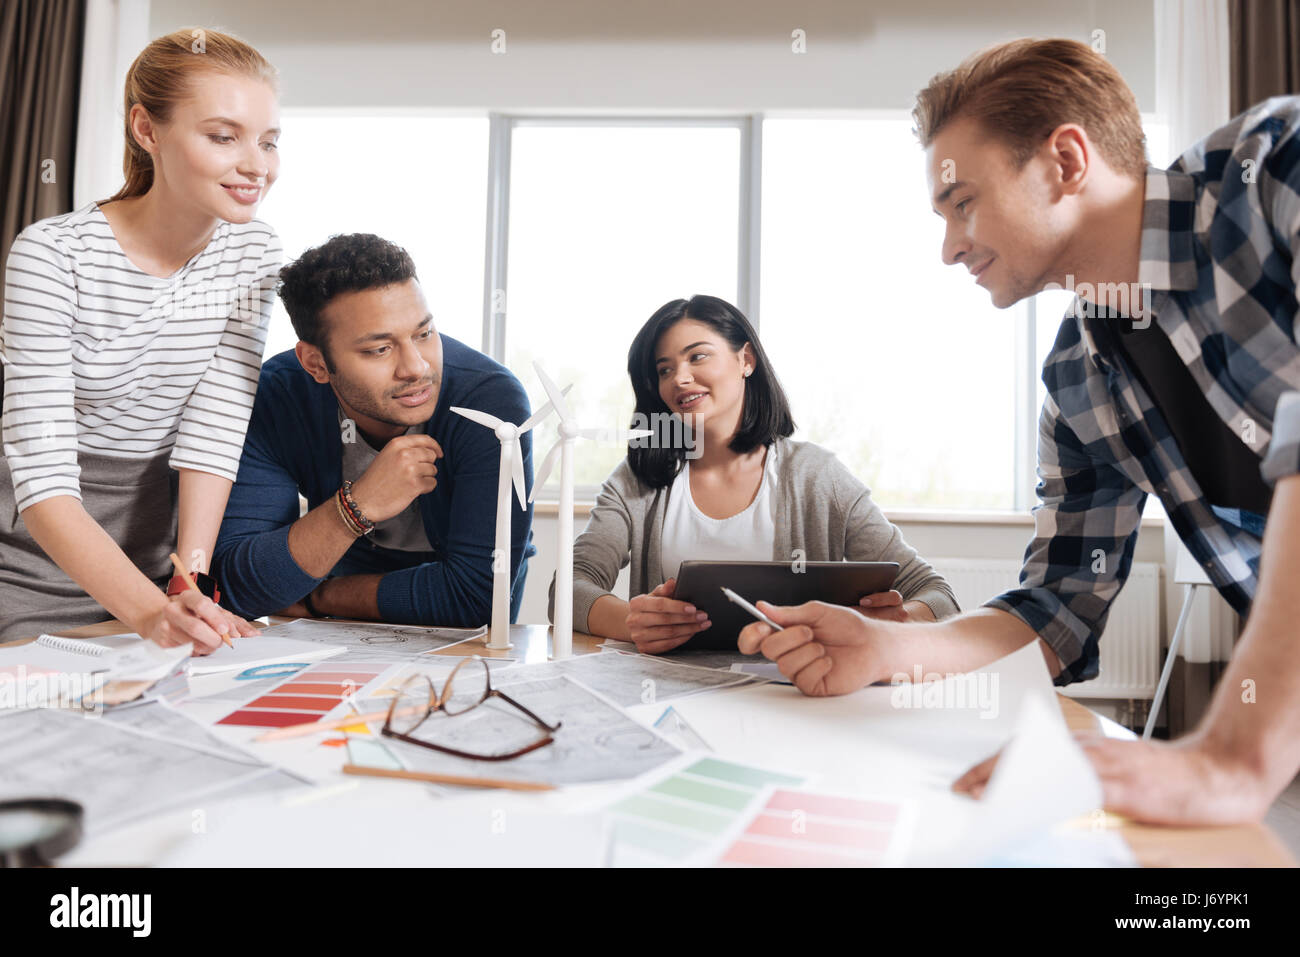 Hard working young team of engineers working together - Stock Image